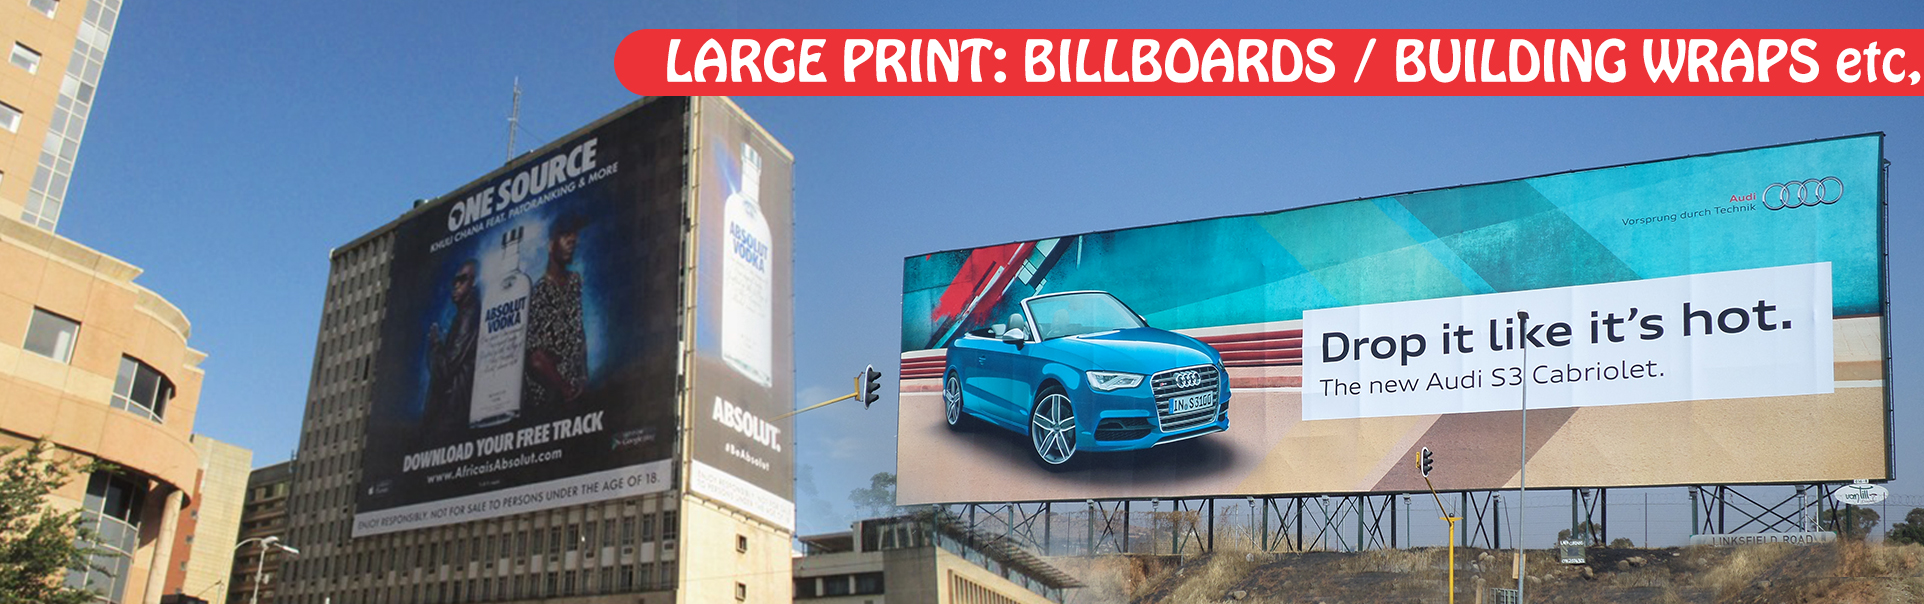 Print Impact | We print Billboards, Building Wraps and other Large Format Printing